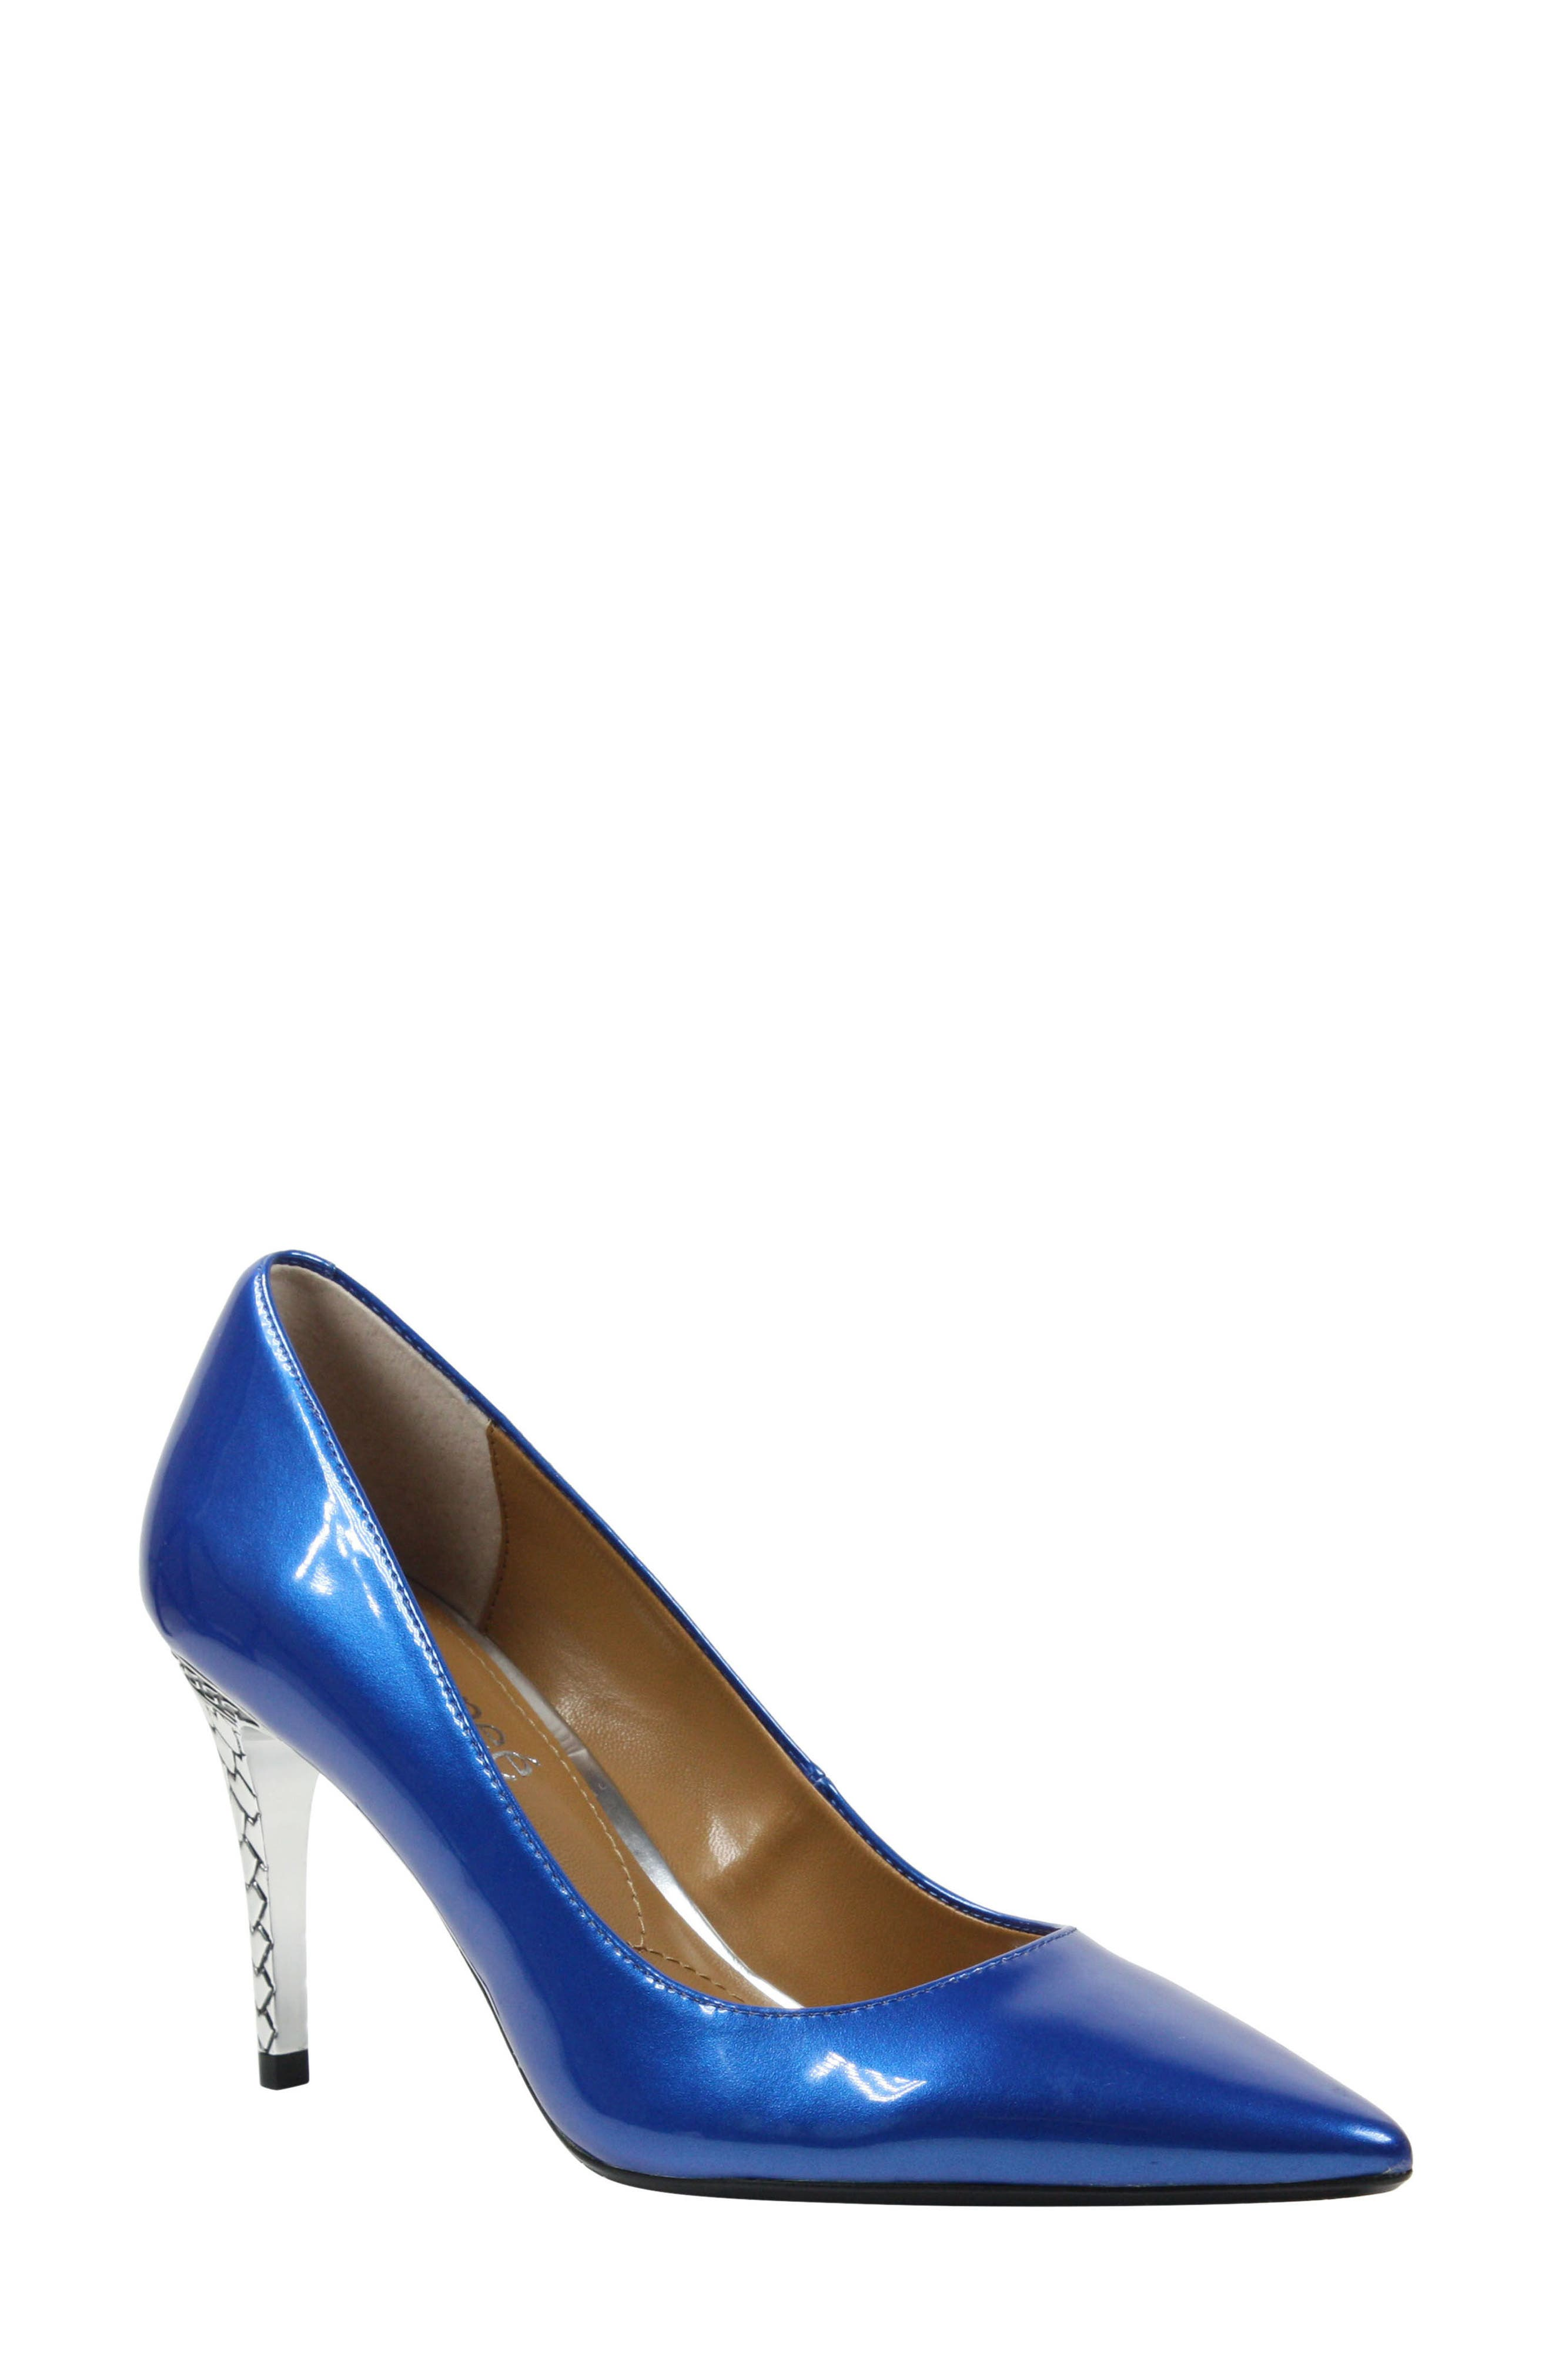 'Maressa' Pointy Toe Pump,                             Main thumbnail 1, color,                             Blue Patent